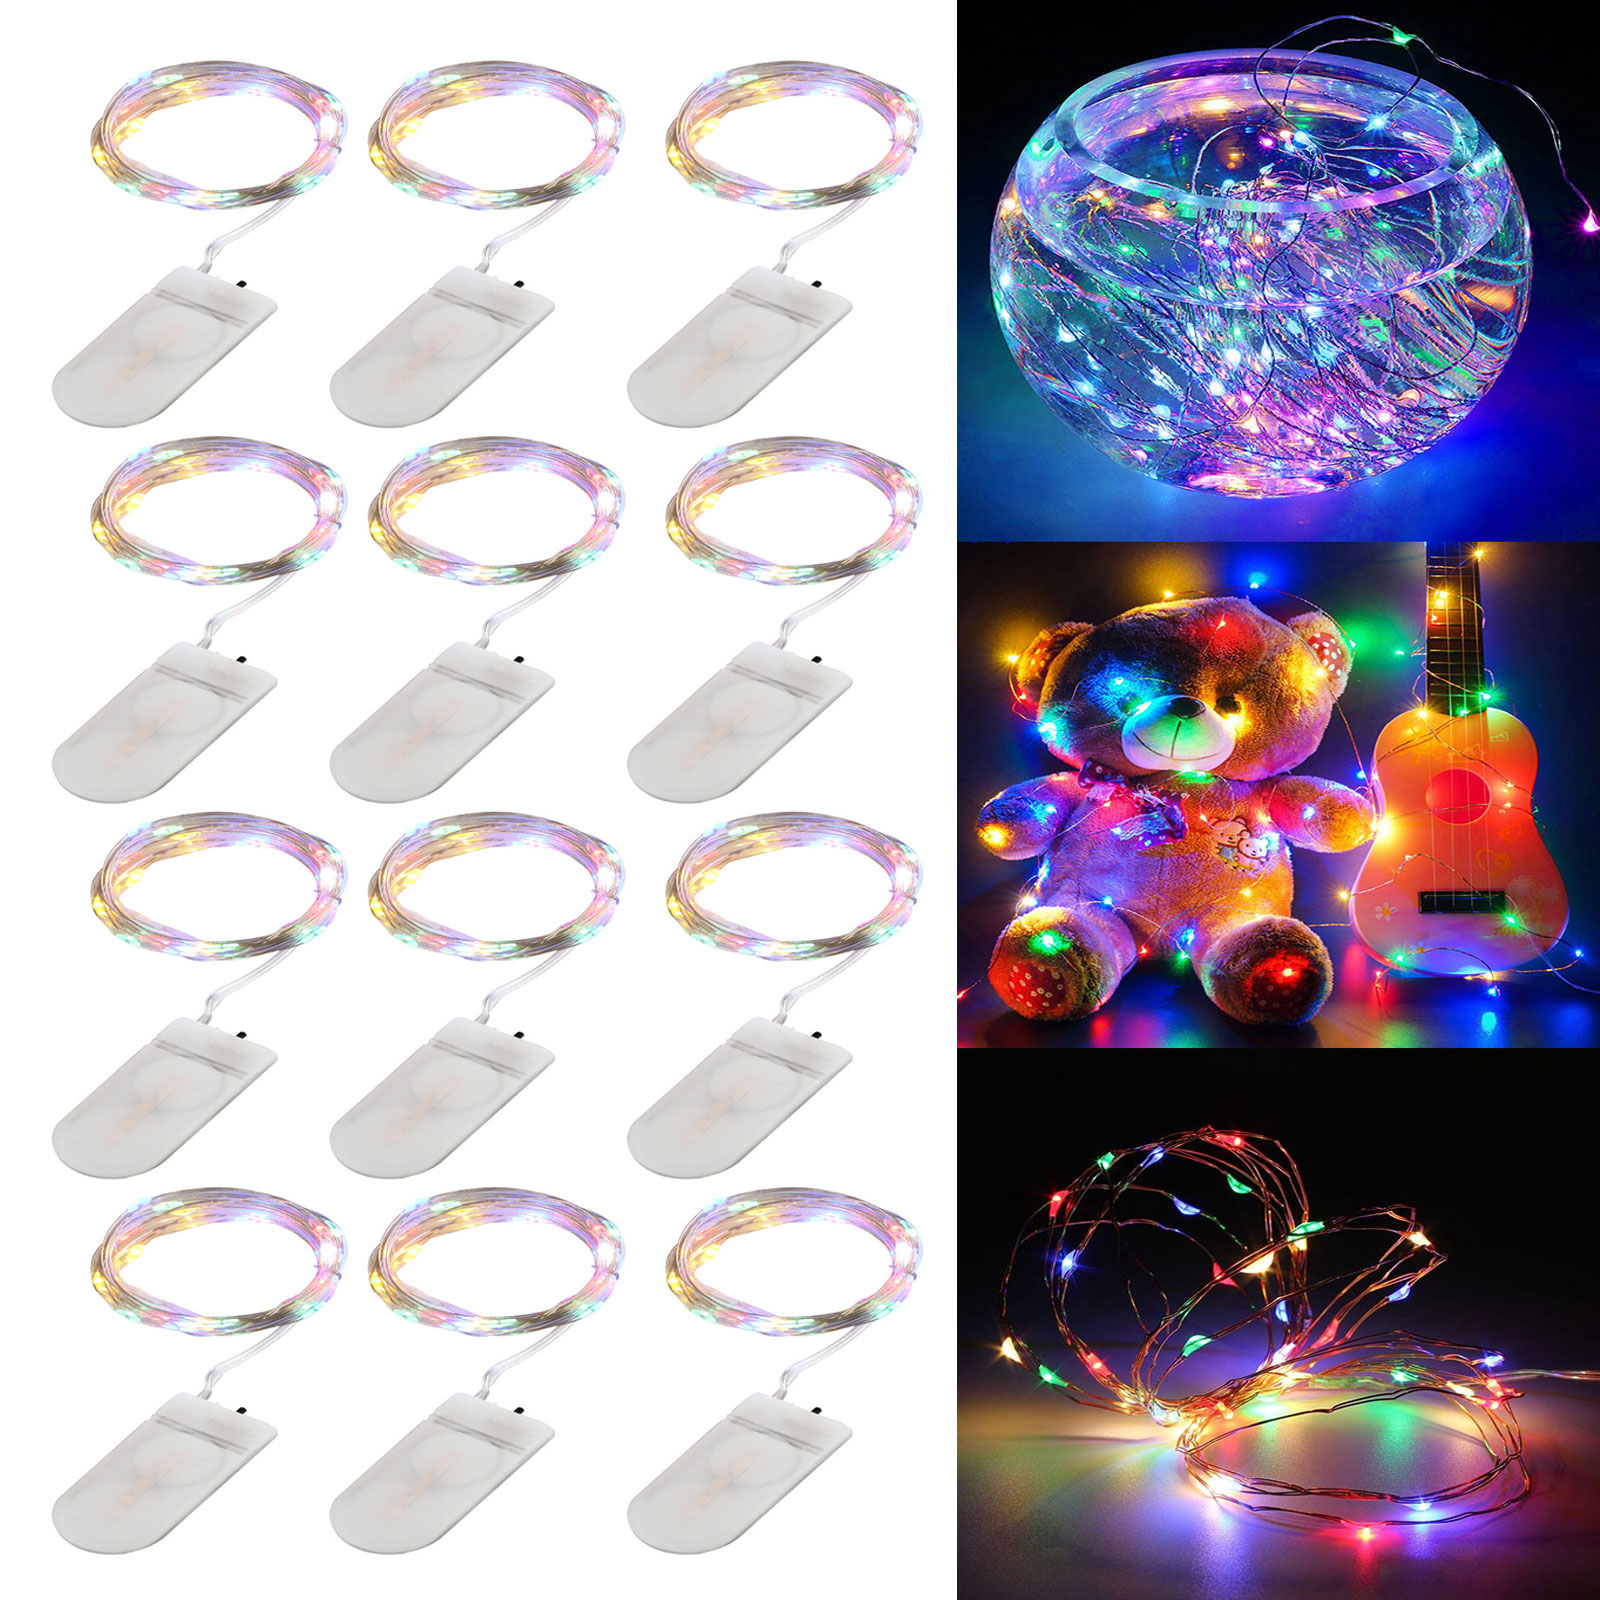 10 Sets of 3 LEDs Battery Operated Micro Wire String Silver Fairy Party Lights